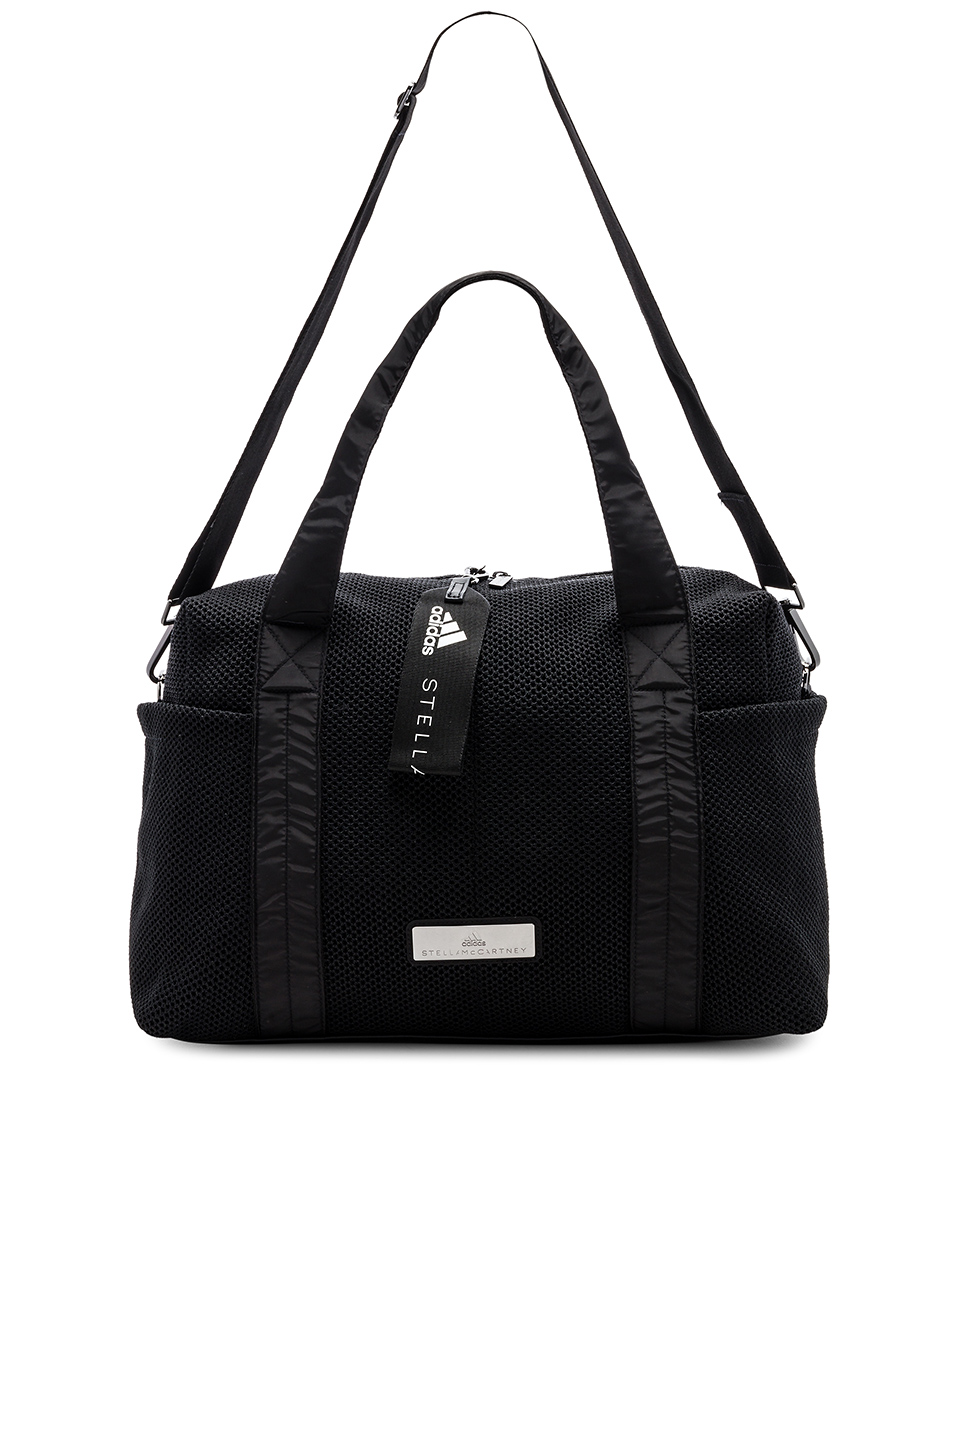 Buy Original adidas by Stella McCartney Shipshape Bag at Indonesia ... be5d0663e07a2